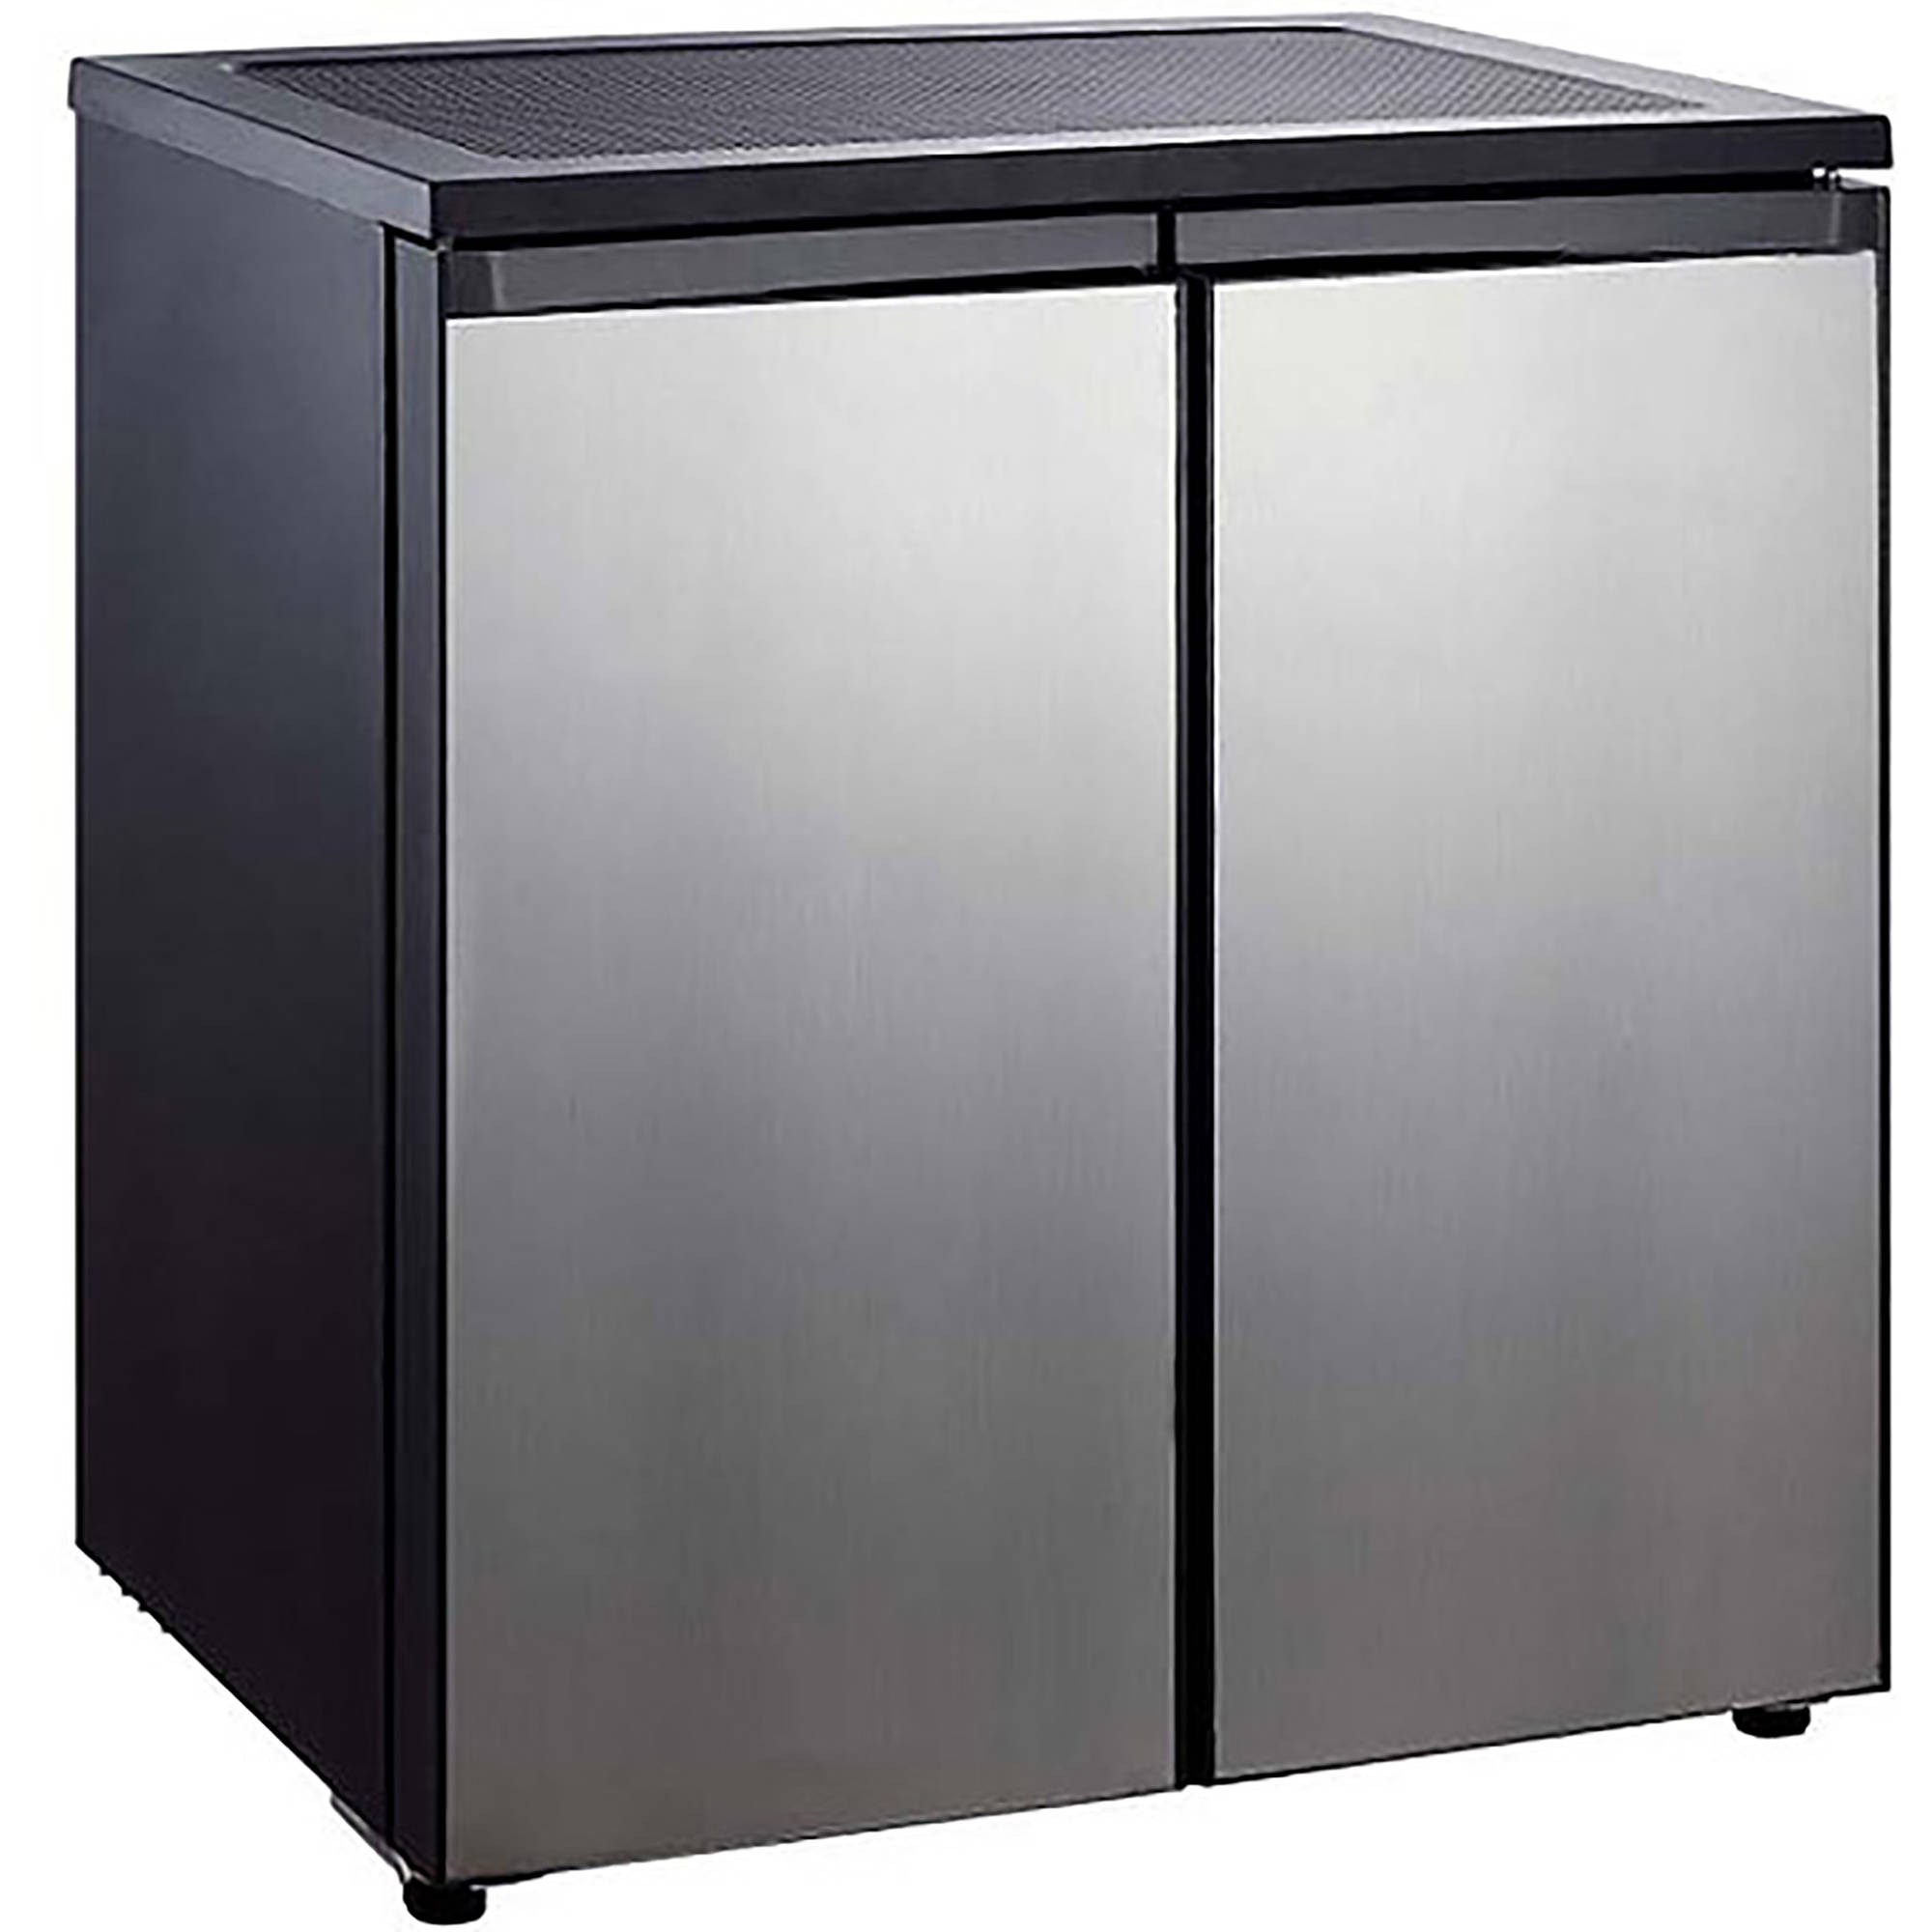 Igloo 5.5-cu. ft. Side-by-Side 2-Door Refrigerator/Freezer, Stainless Steel